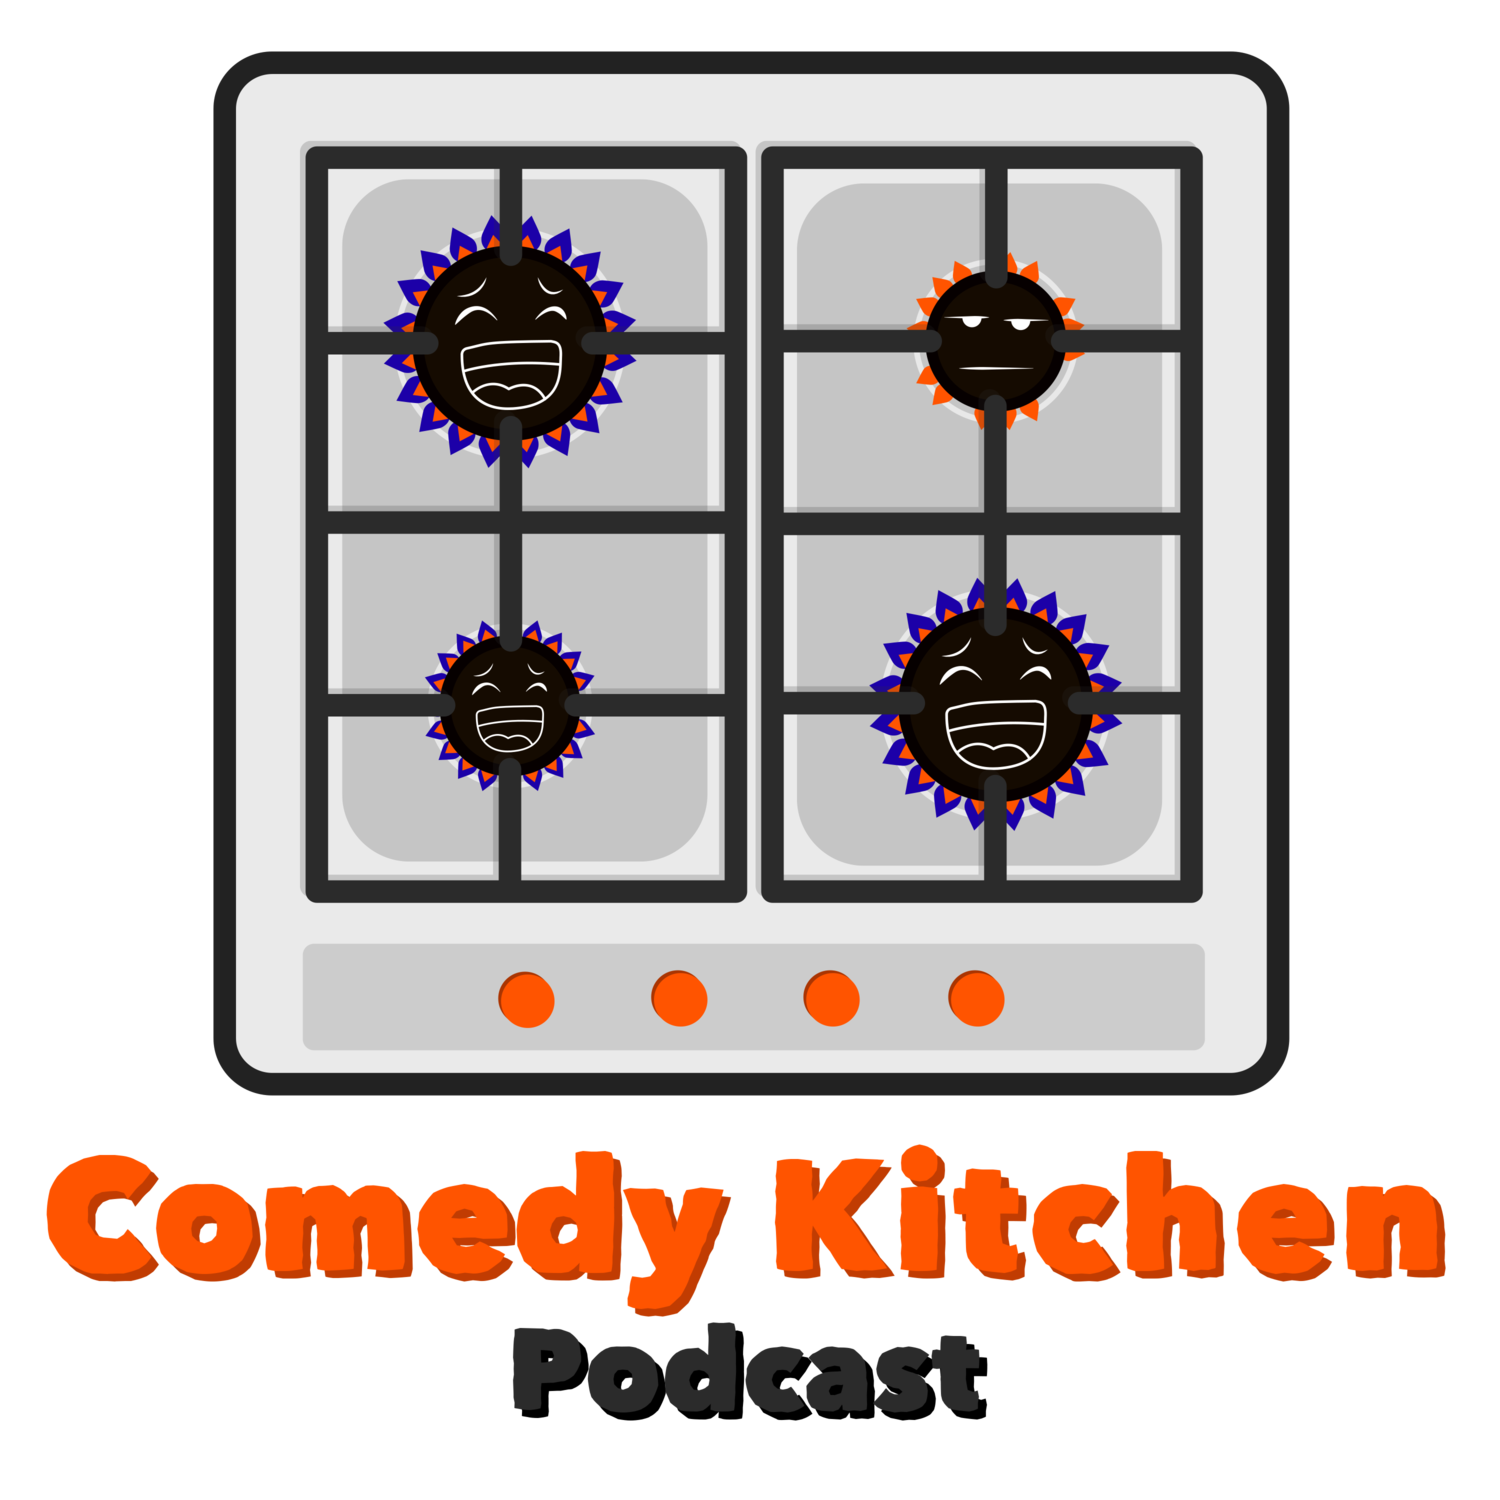 Comedy Kitchen Podcast